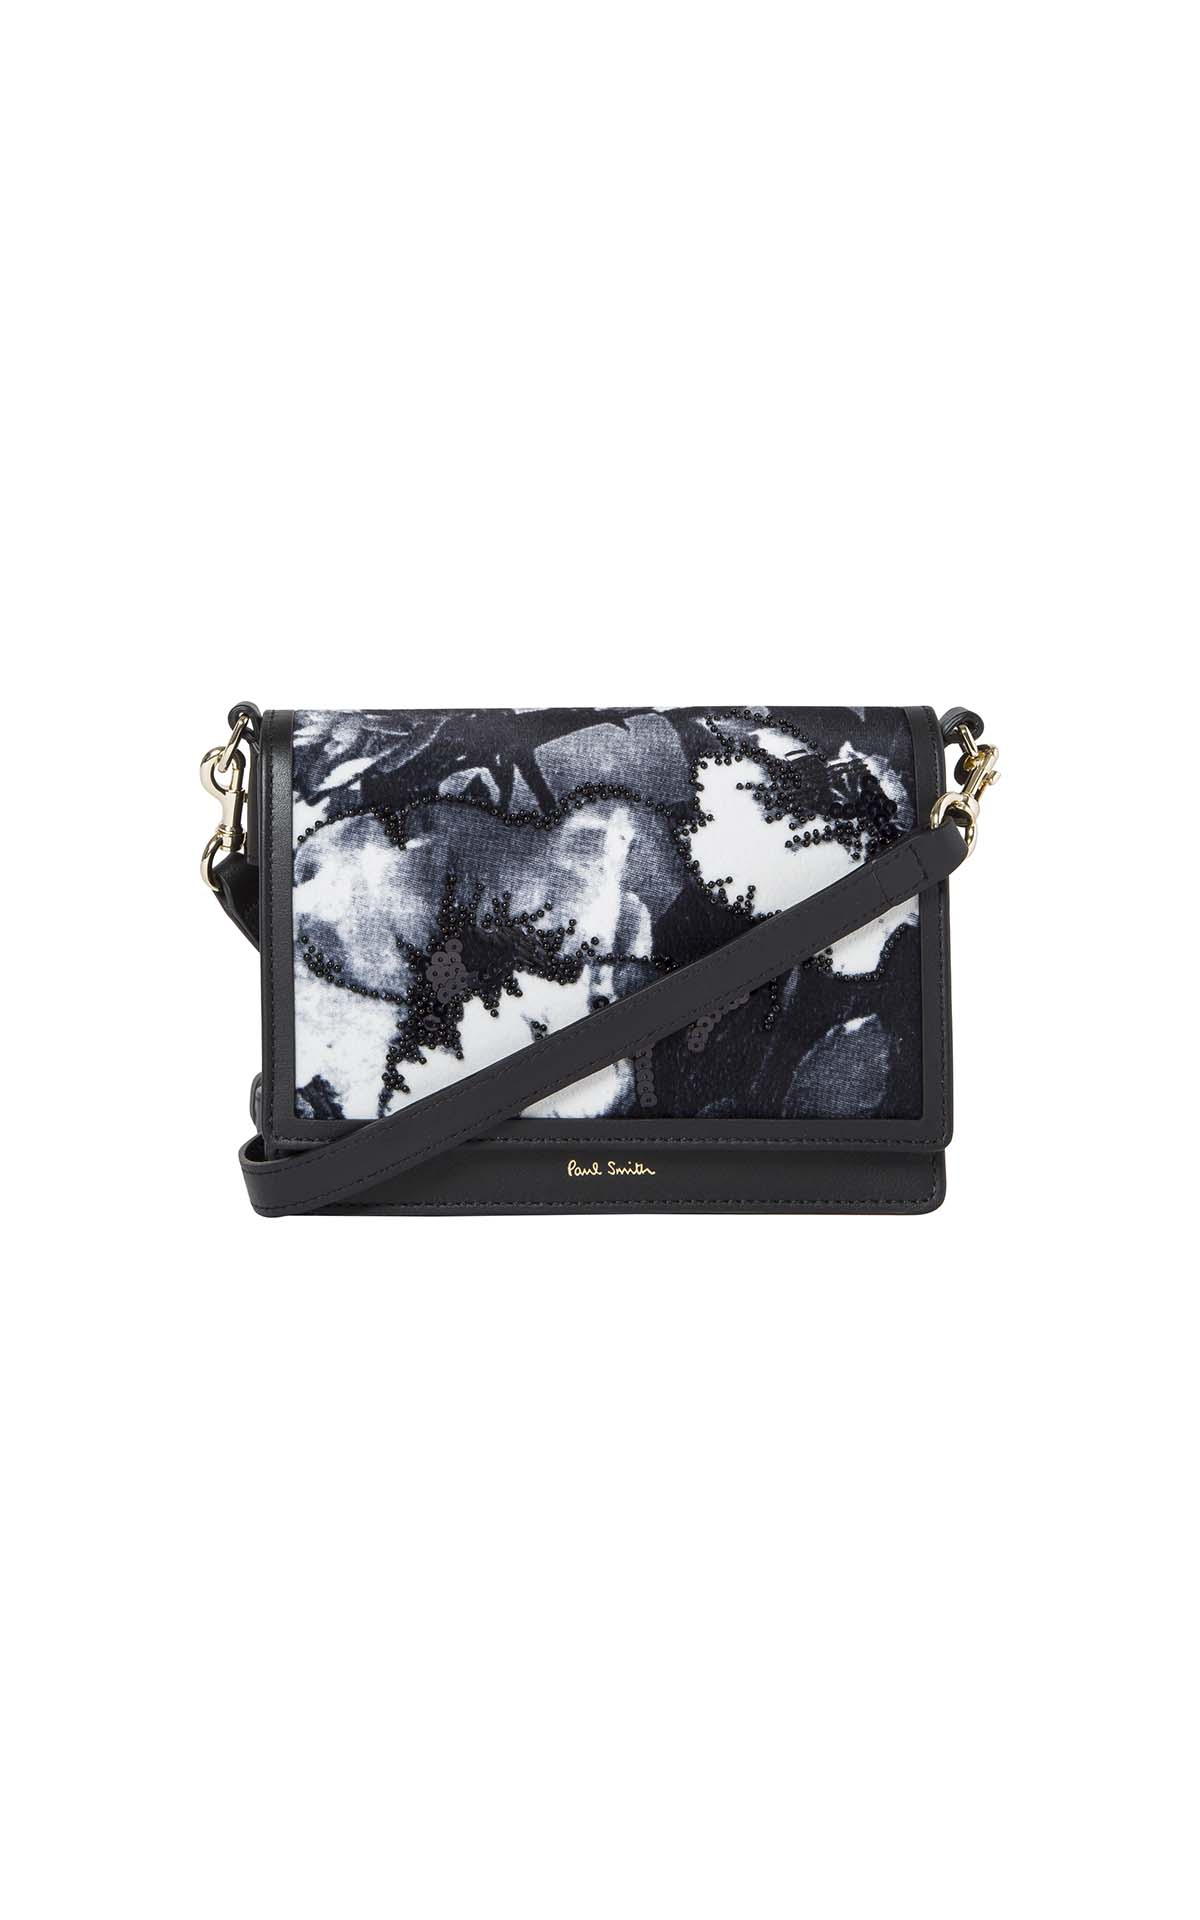 Paul Smith Women's Floral Cross Body Bag at The Bicester Village Shopping Collection